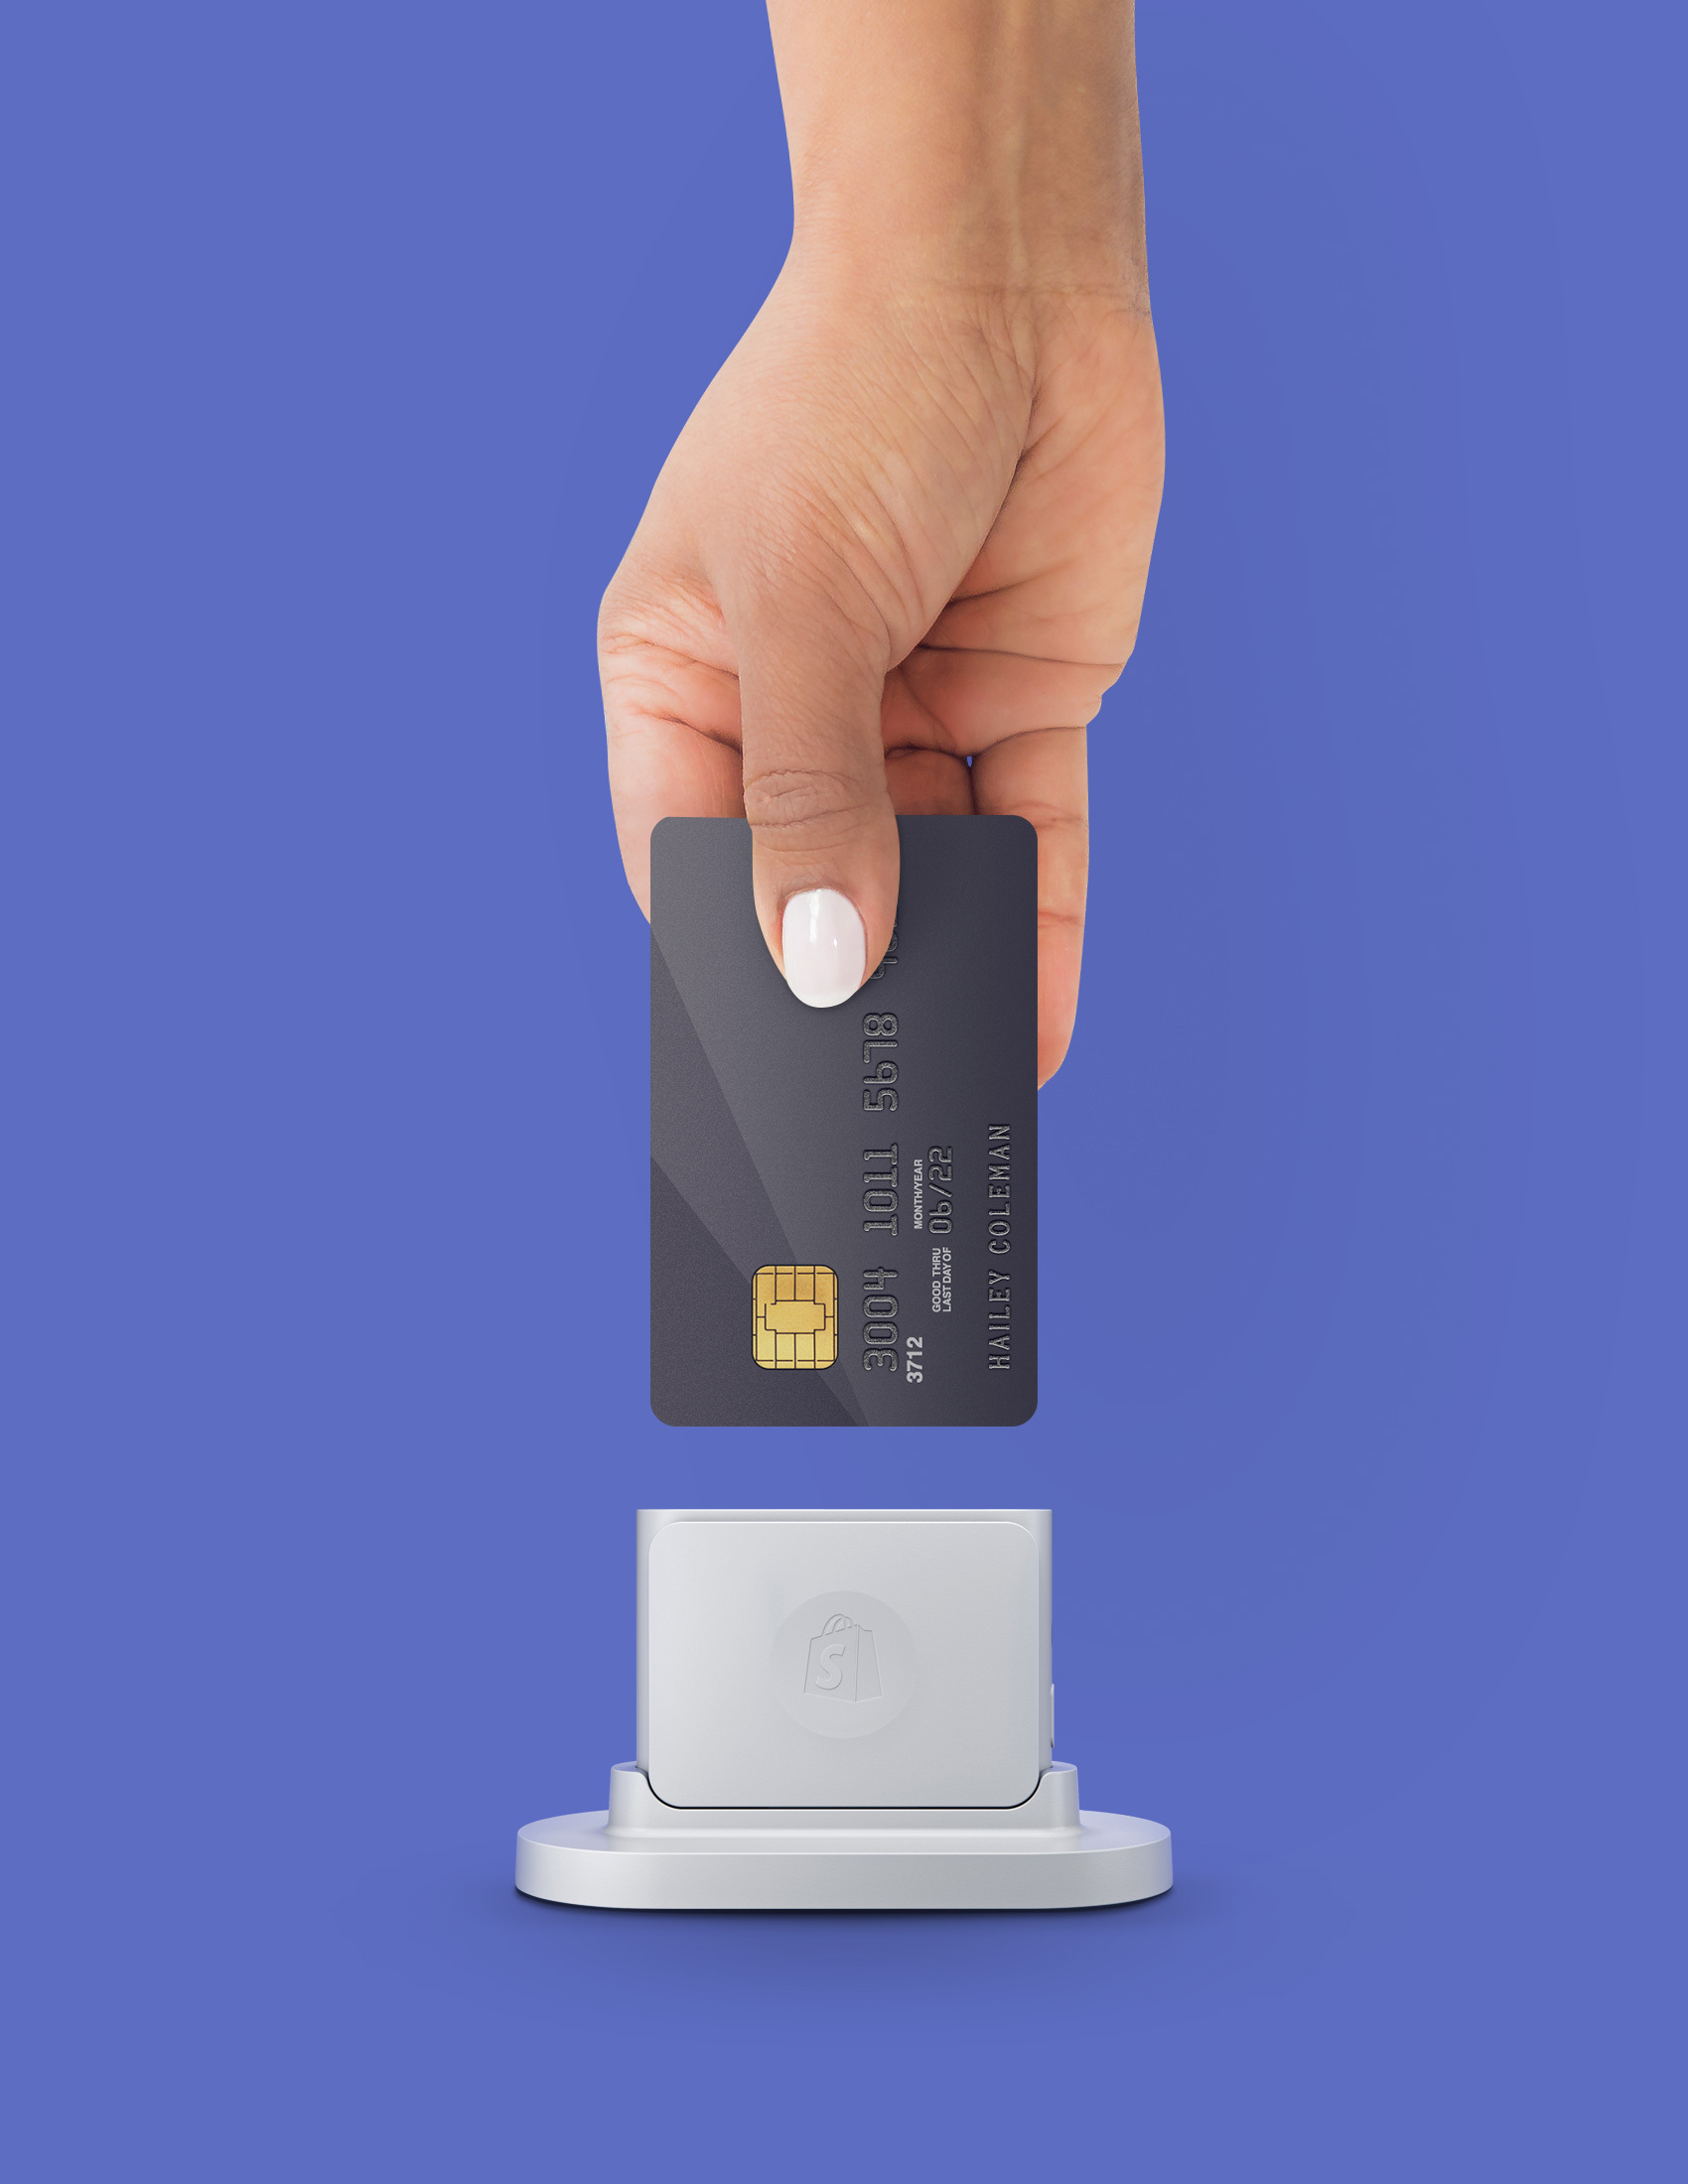 Shopify Announces New Free Card Reader for In-Person Selling ...